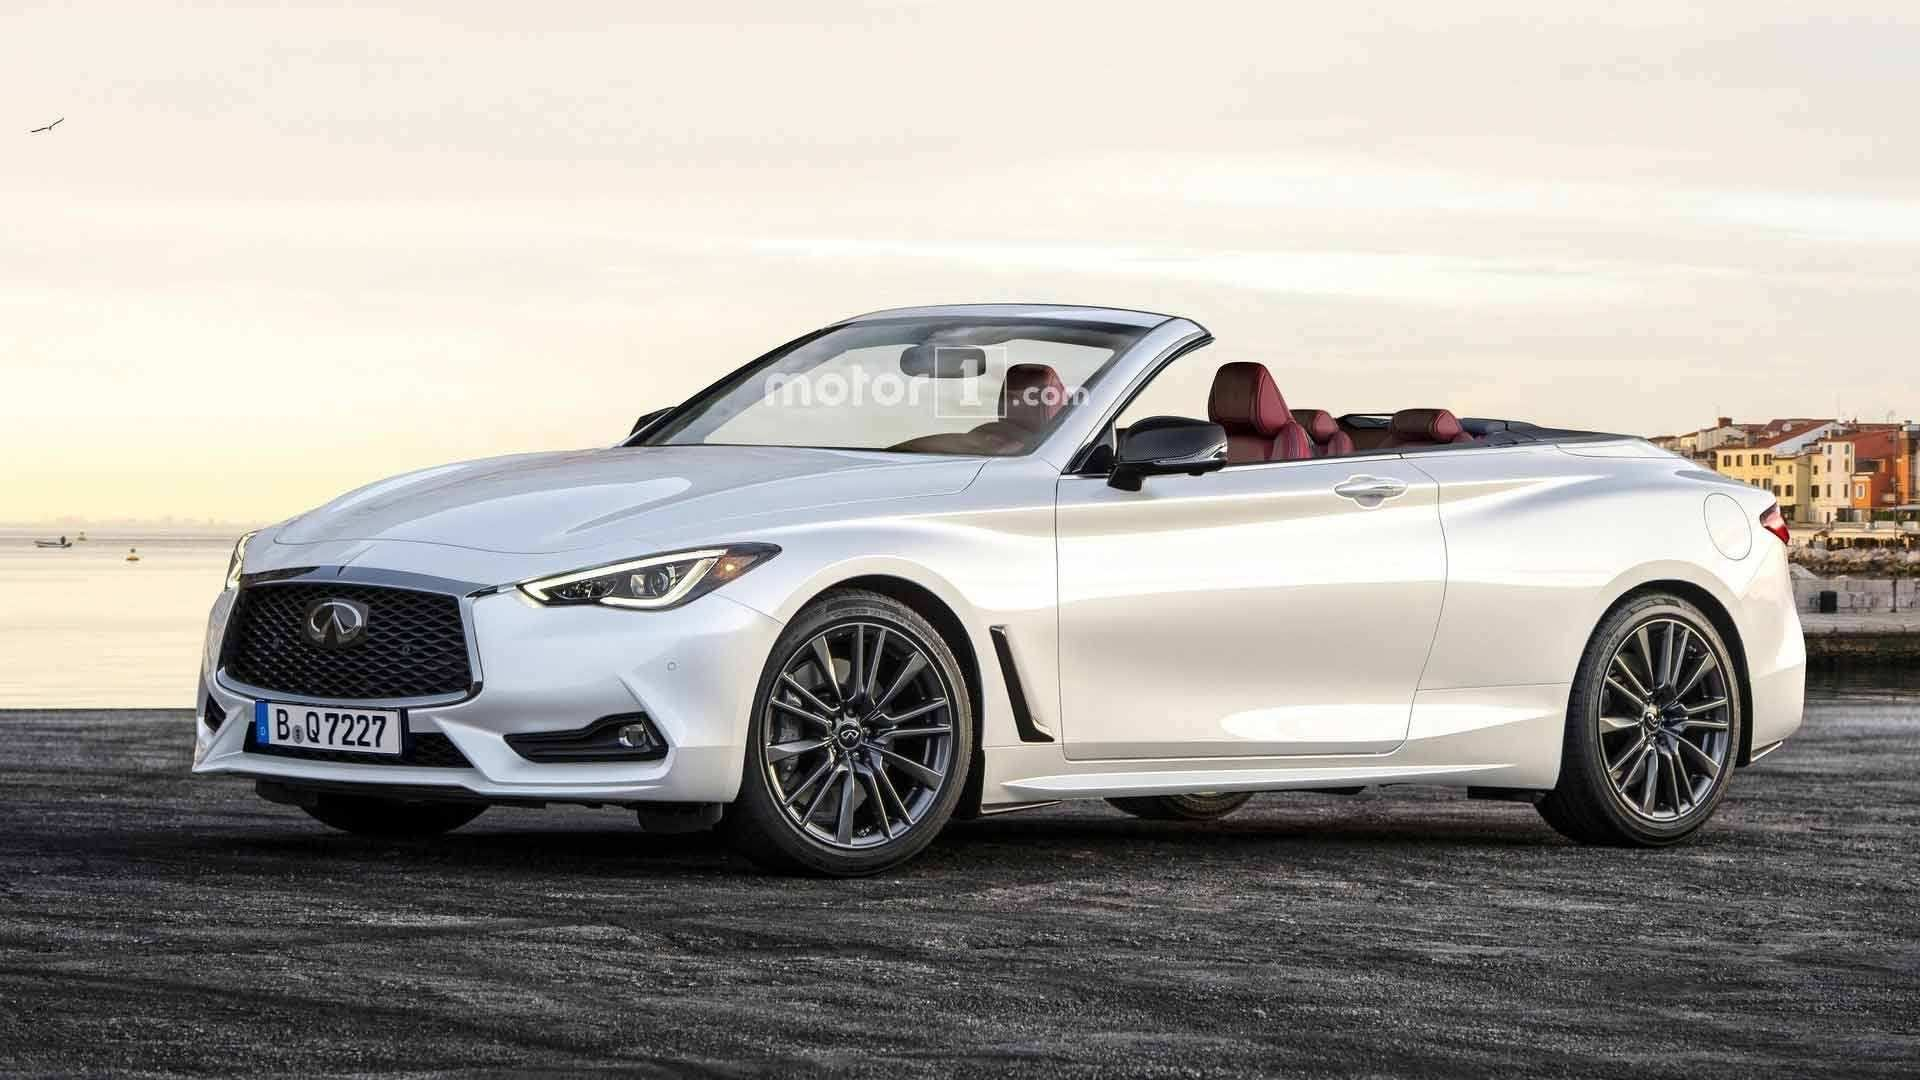 31 All New 2020 Infiniti Q60s Prices for 2020 Infiniti Q60s